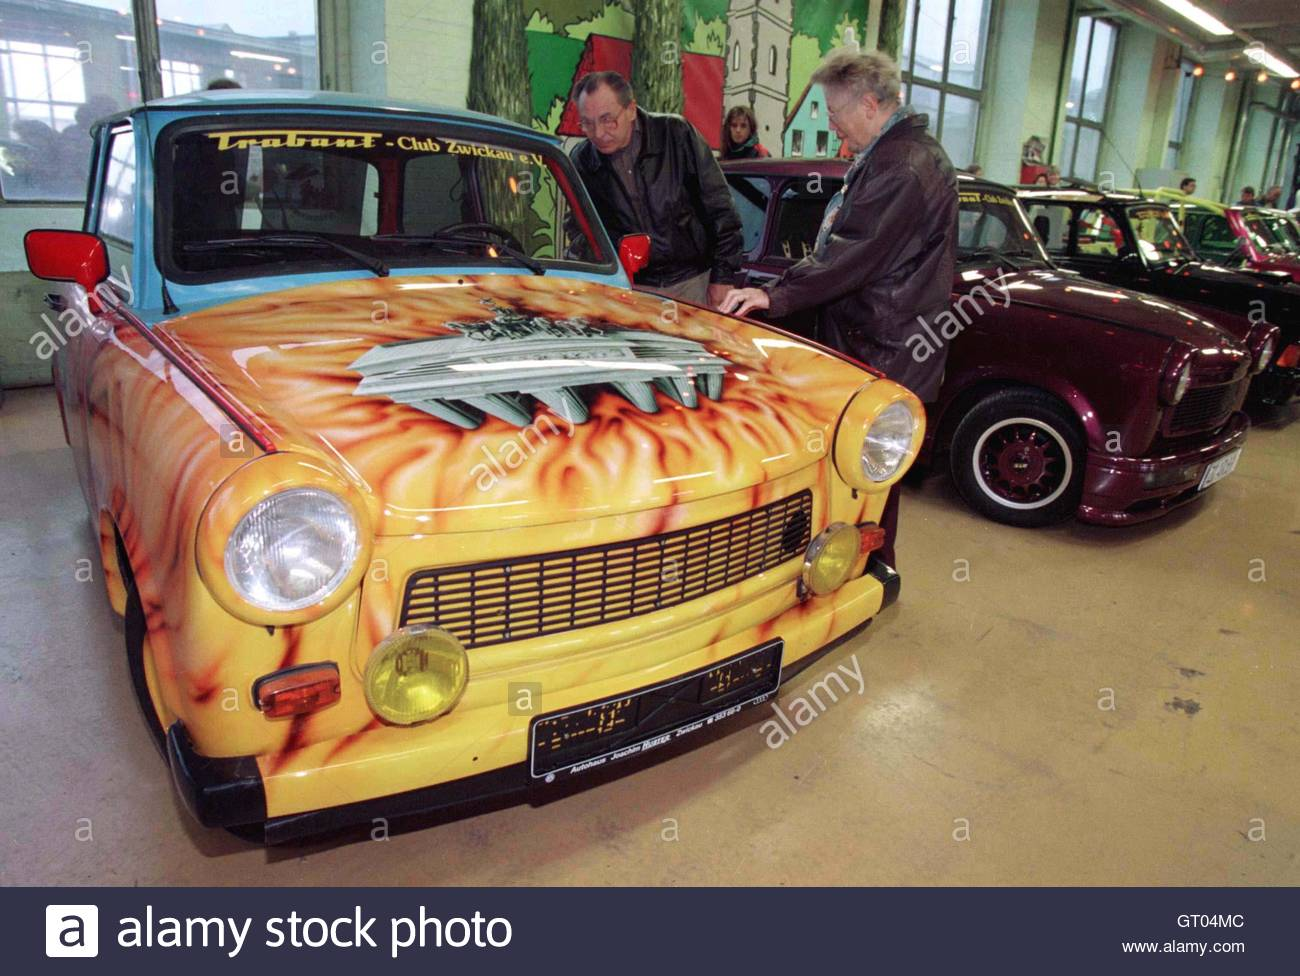 Colored cars zwickau - Colored Cars Zwickau An Unidentified Couple Look At A Trabant Trabi Car Colored With The